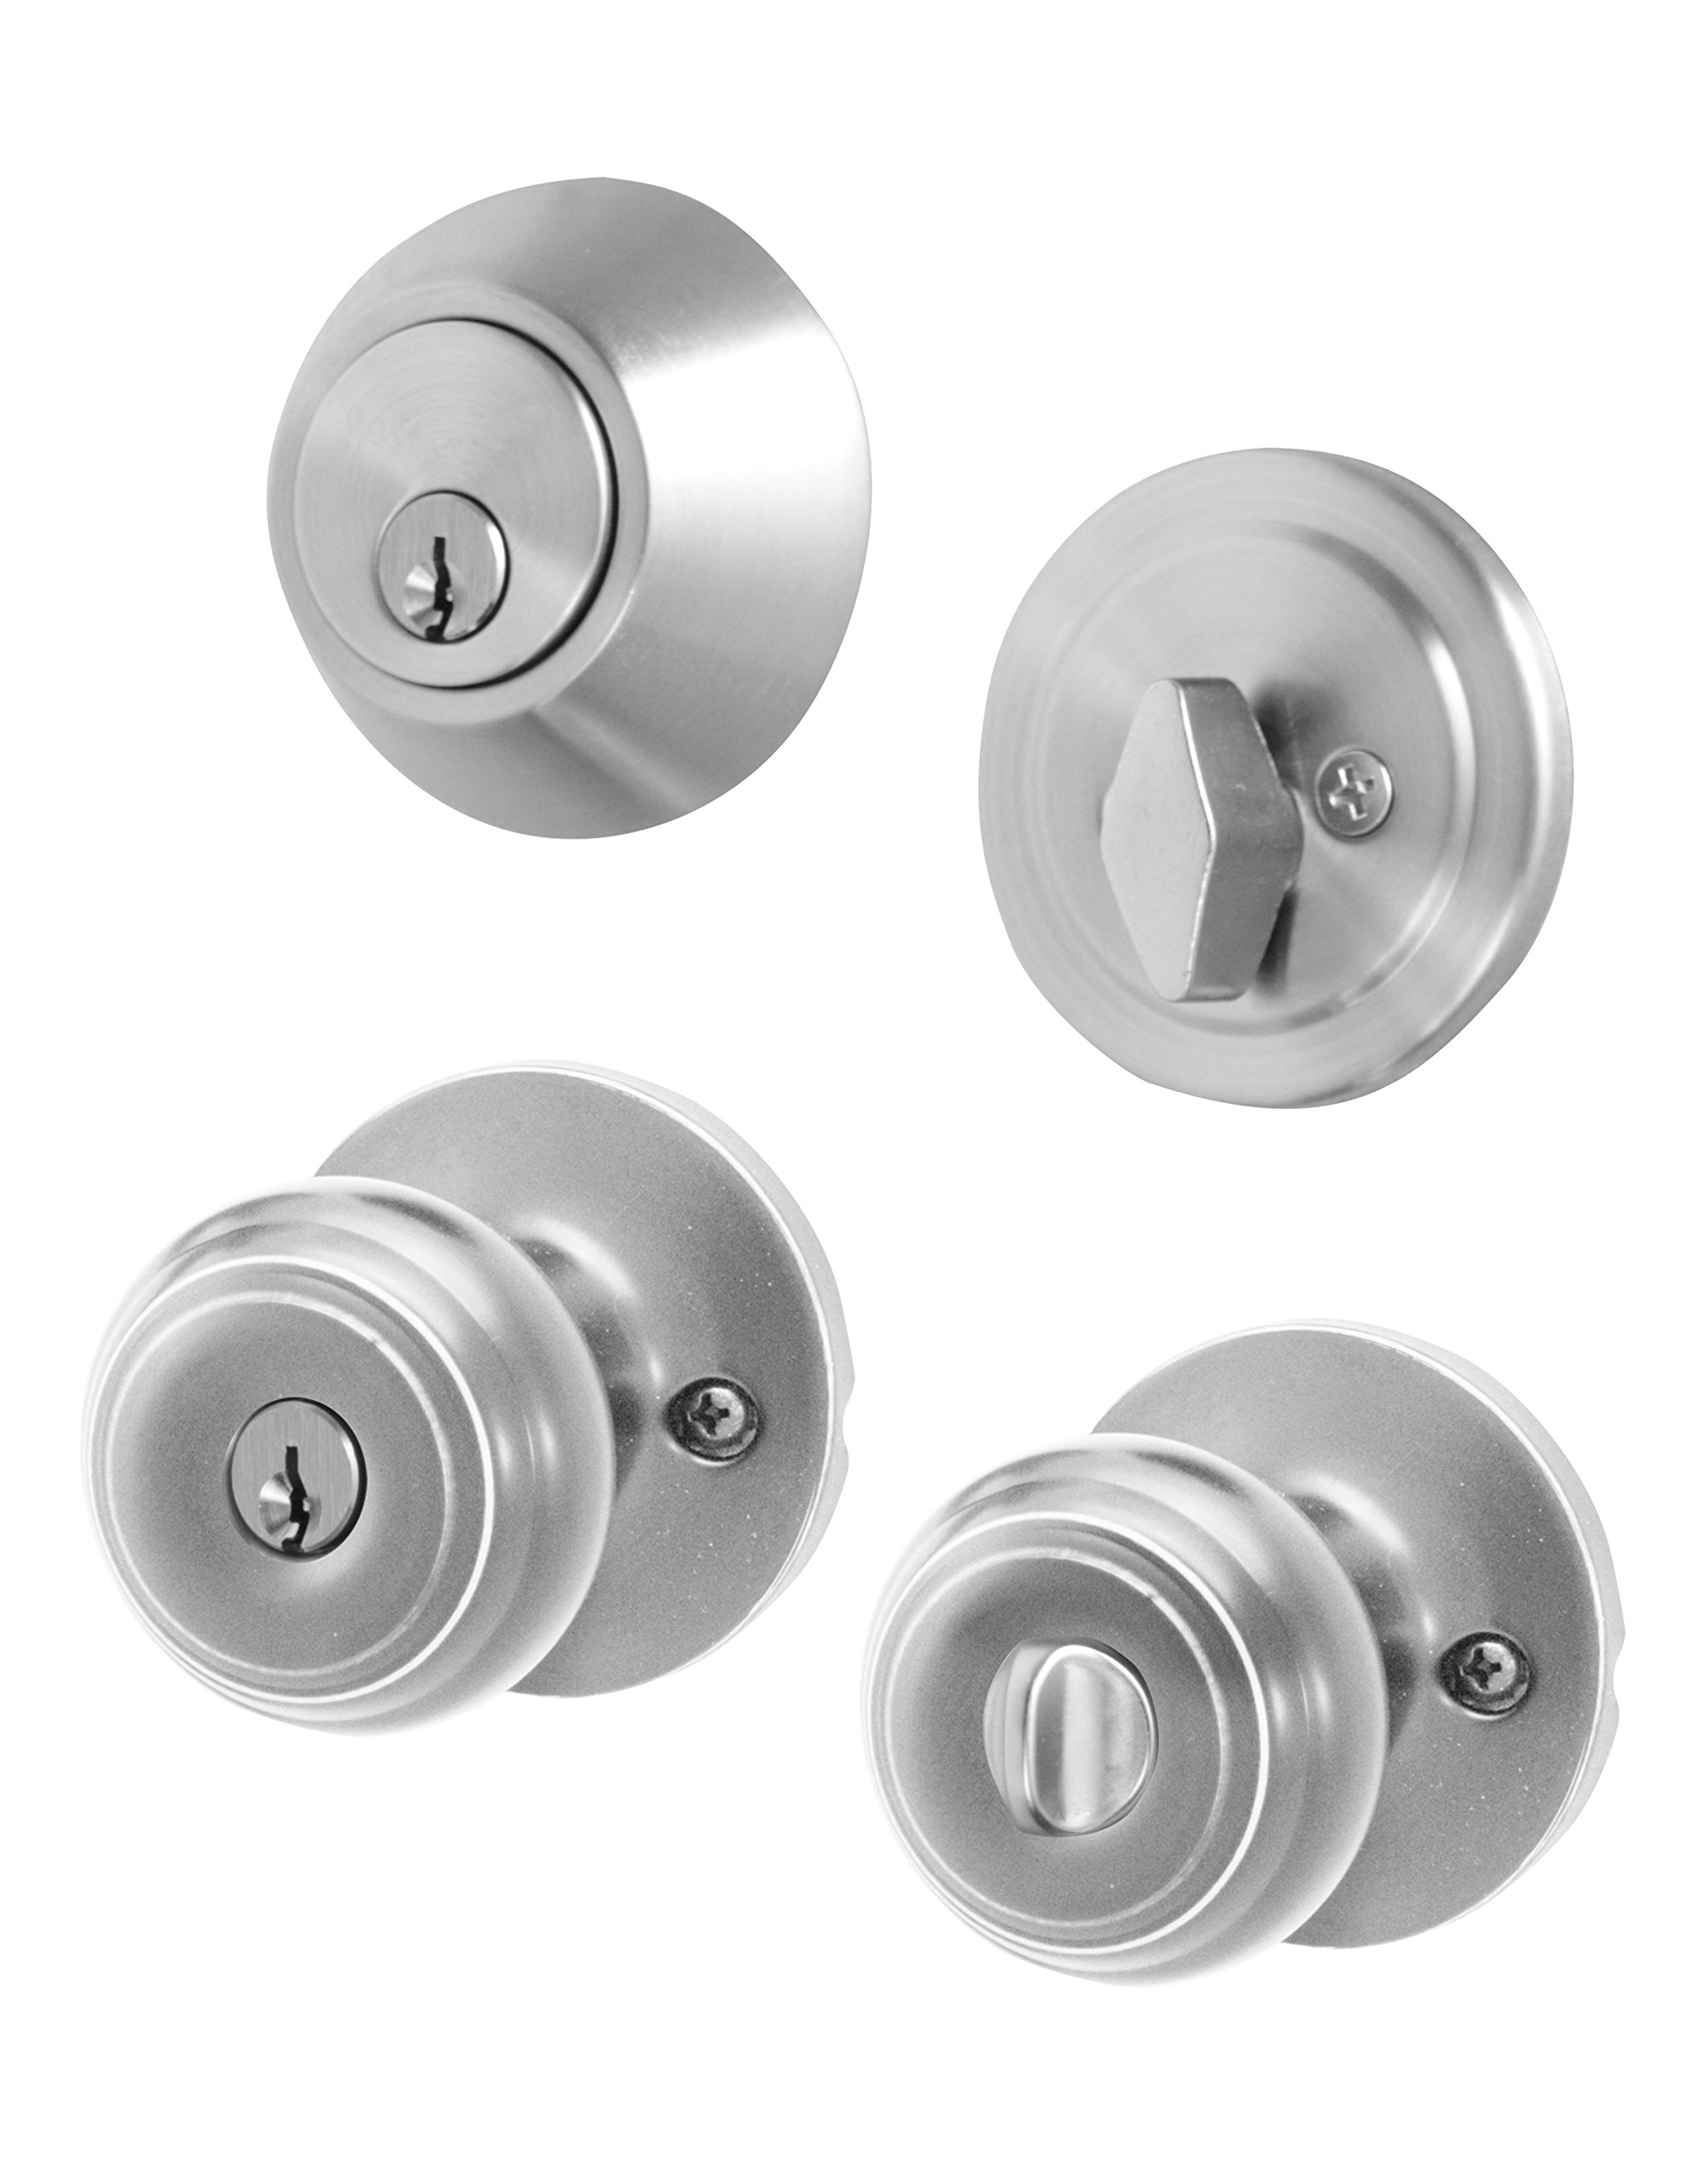 Honeywell 8101305 Classic Combo Door Knob, Satin Nickel